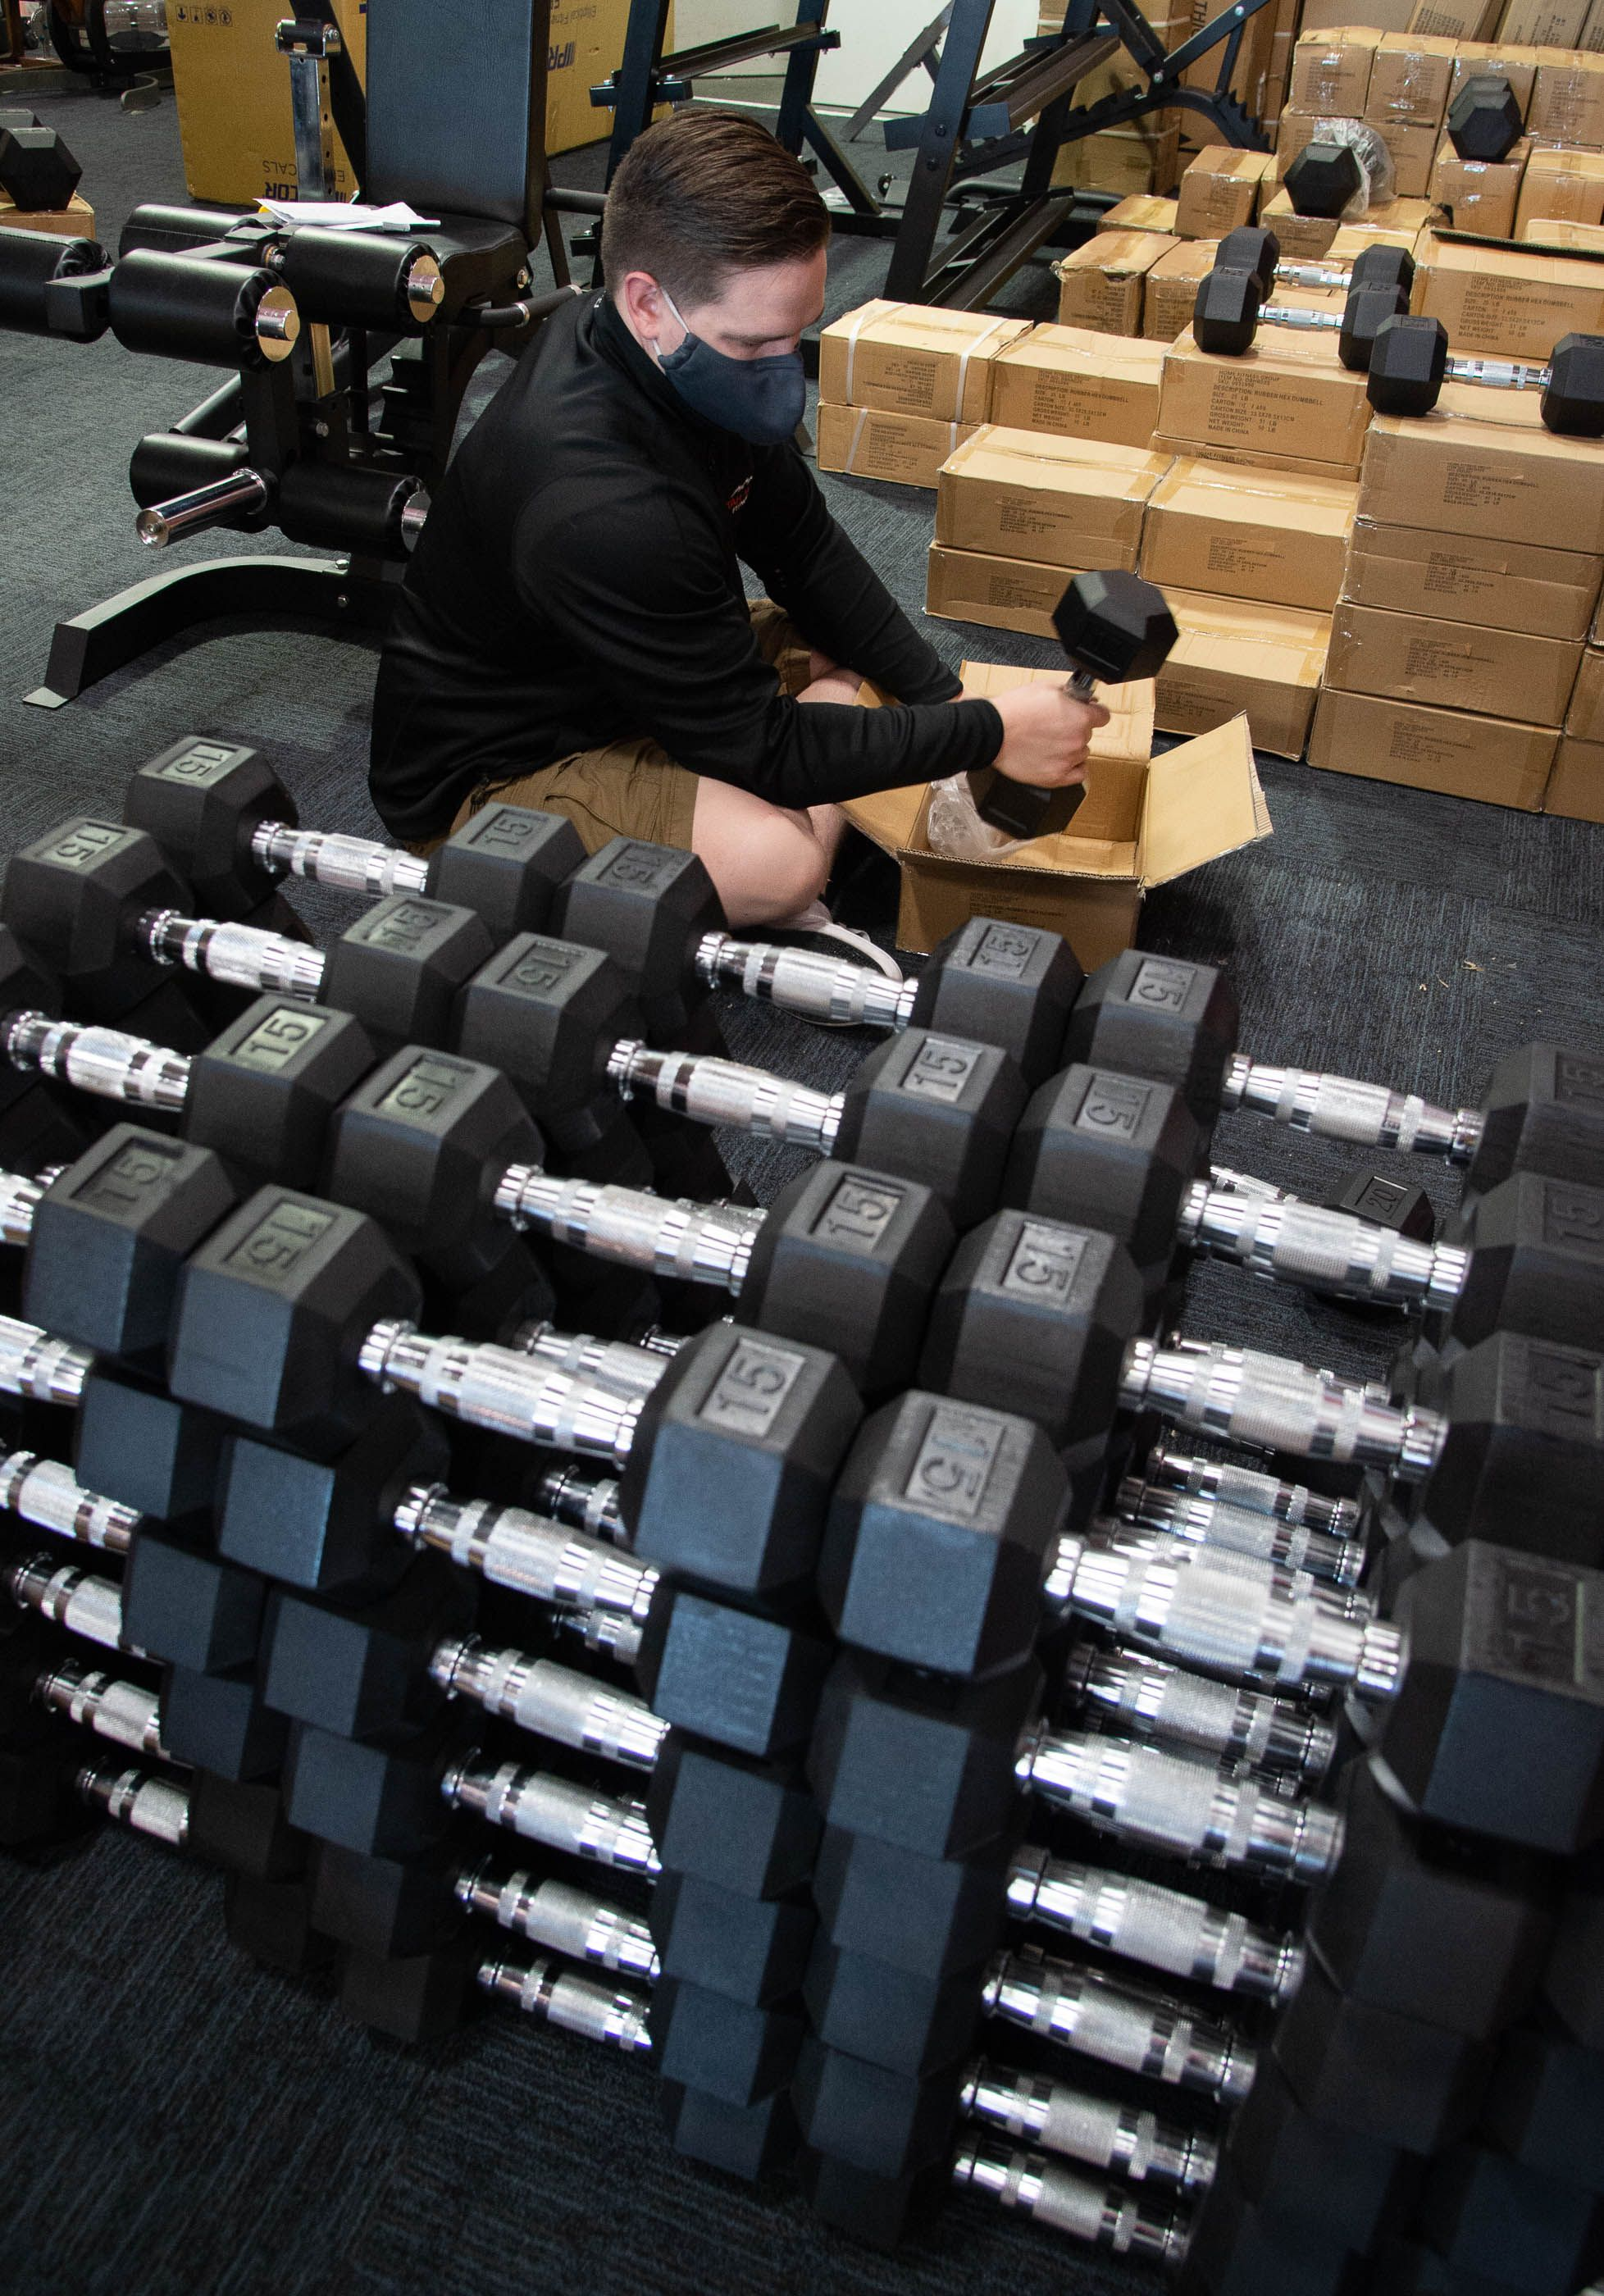 (Francisco Kjolseth  |  The Salt Lake Tribune) Chase Buckles, sales manager at Utah Home Fitness in Sandy, takes advantage of a slow moment to catch up on restocking inventory on Wednesday, Oct. 22, 2020. Home fitness equipment sales boomed in March and April when gyms closed because of the coronavirus. Everything from inexpensive dumbbells to premium treadmills and ellipticals were wiped out of stores and warehouses. Record sales continue throughout the summer — normally the slow time for the industry, and store owners expect sales to remain high during the holidays.